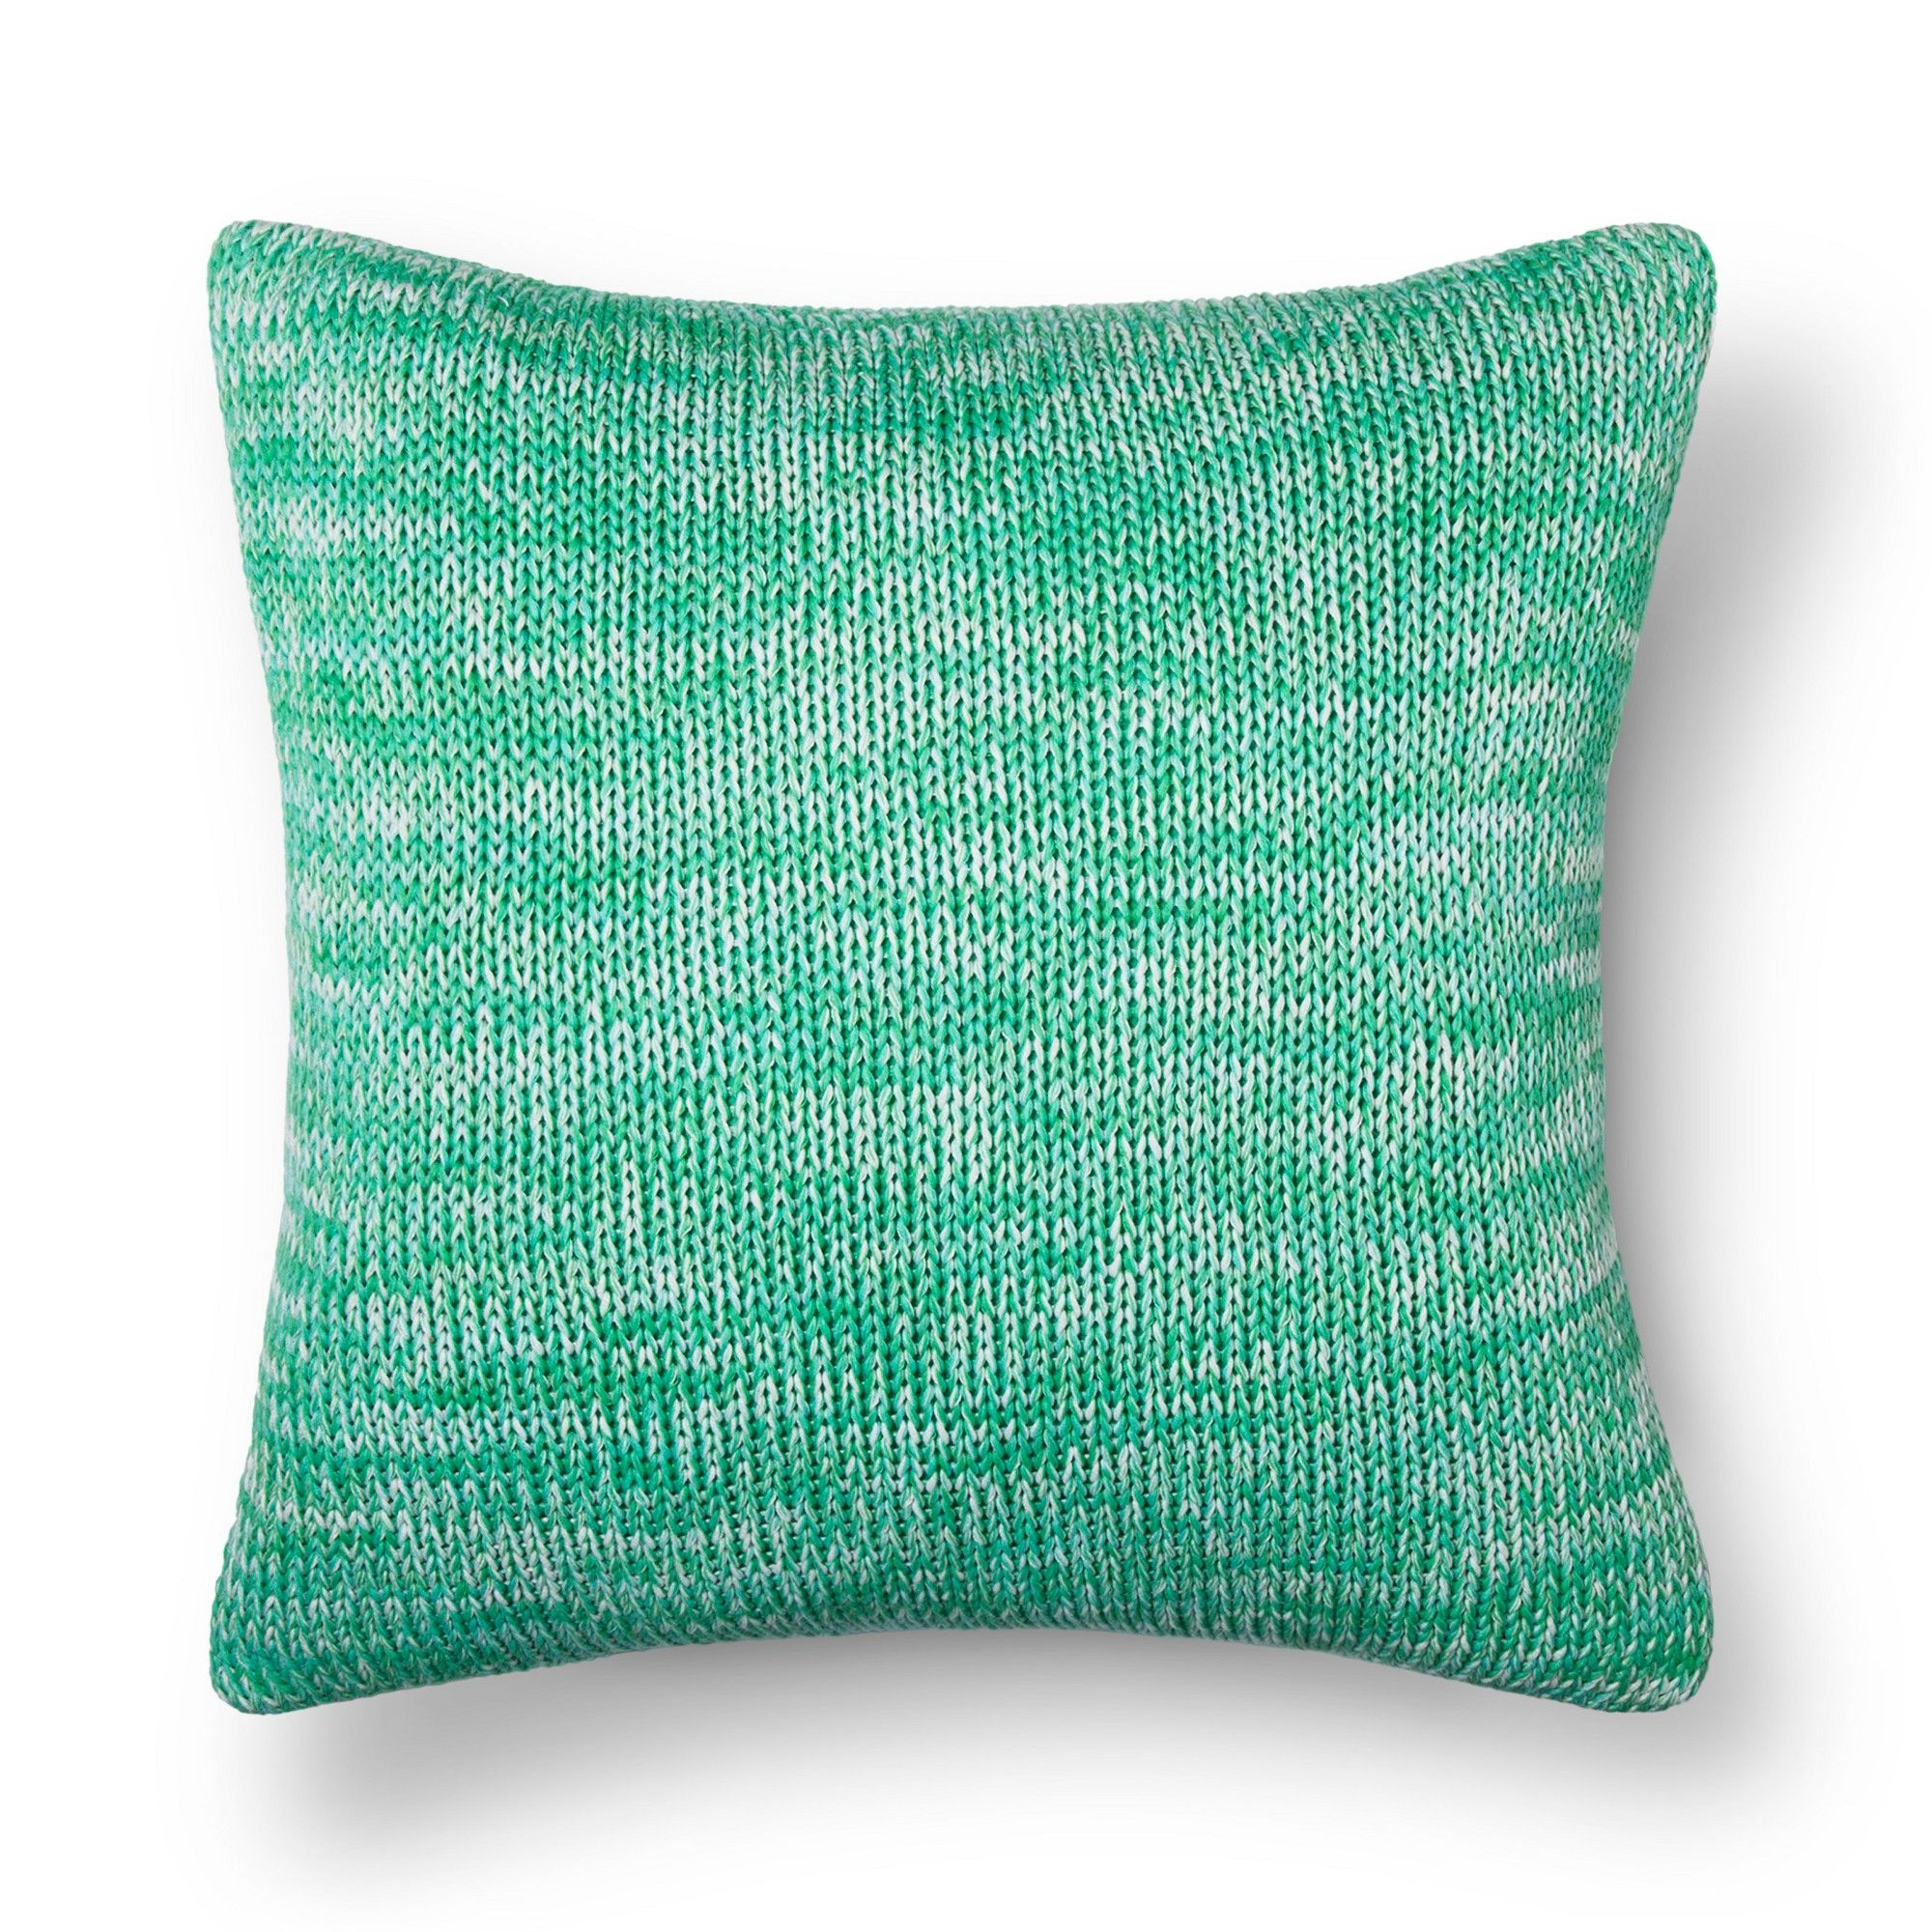 Green Marled Knit Throw Pillow Threshold , Adult Unisex